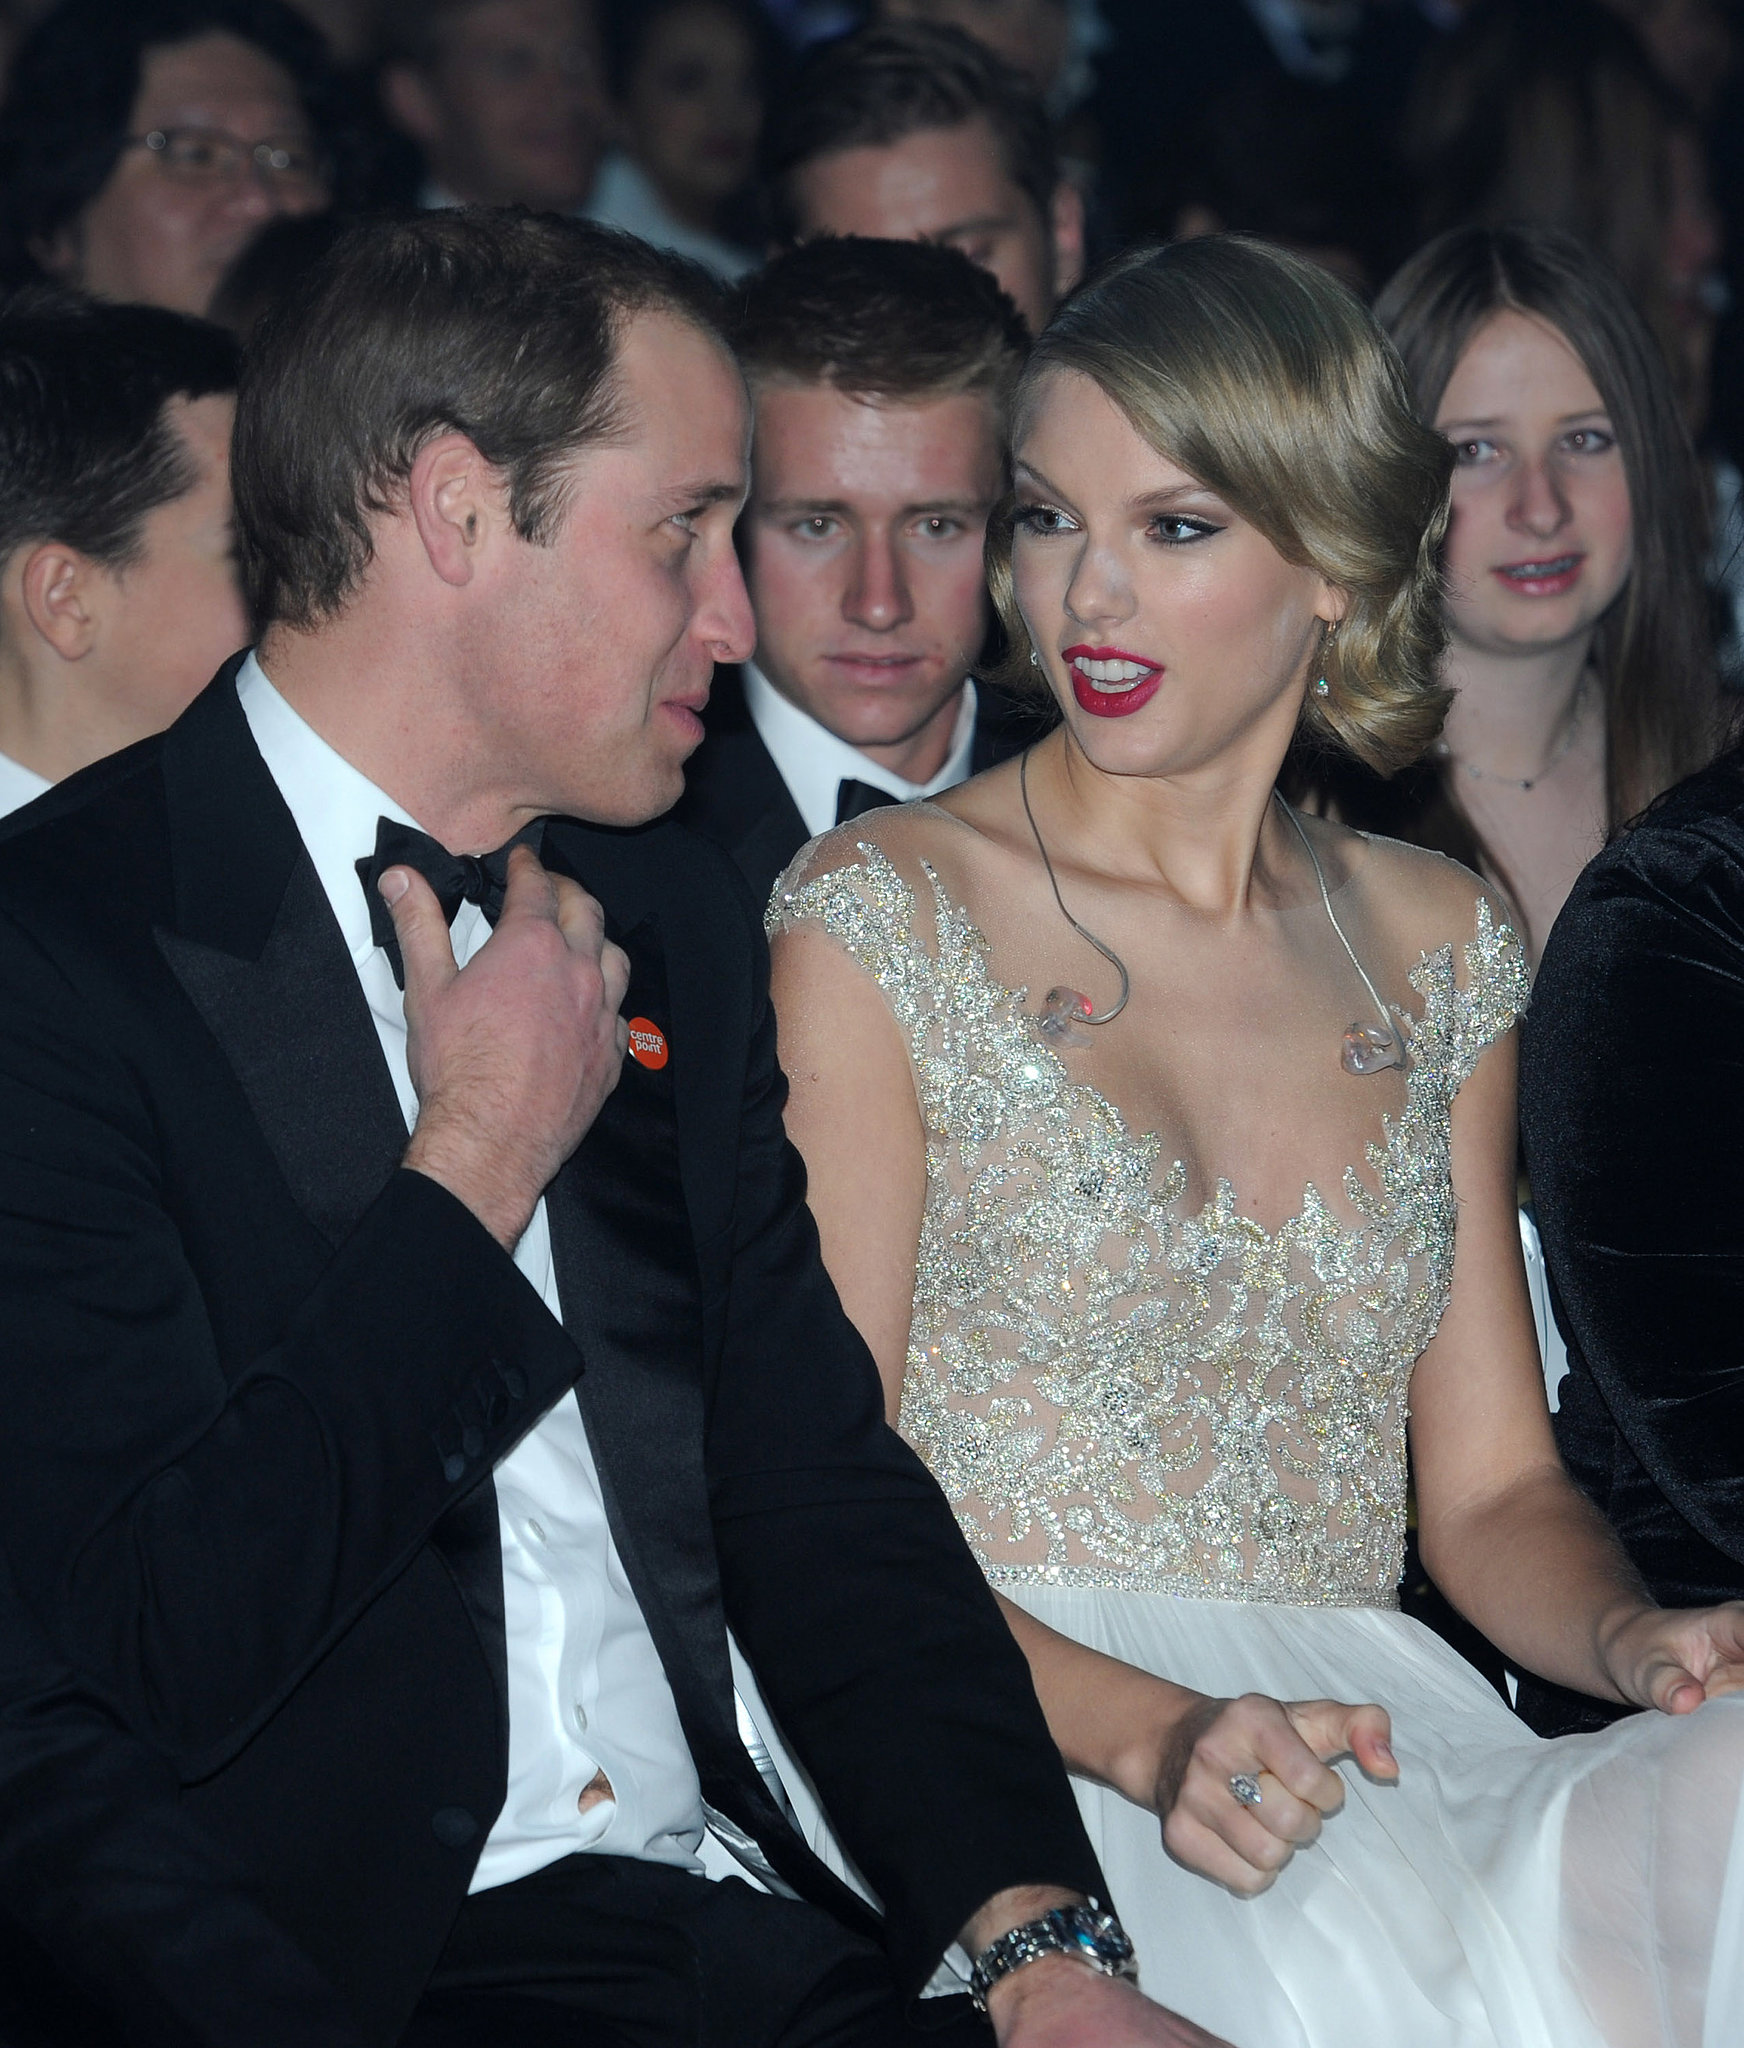 Taylor Swift had a shocked facial expression while attending the Winter Whites Gala with Prince William in November 2013.